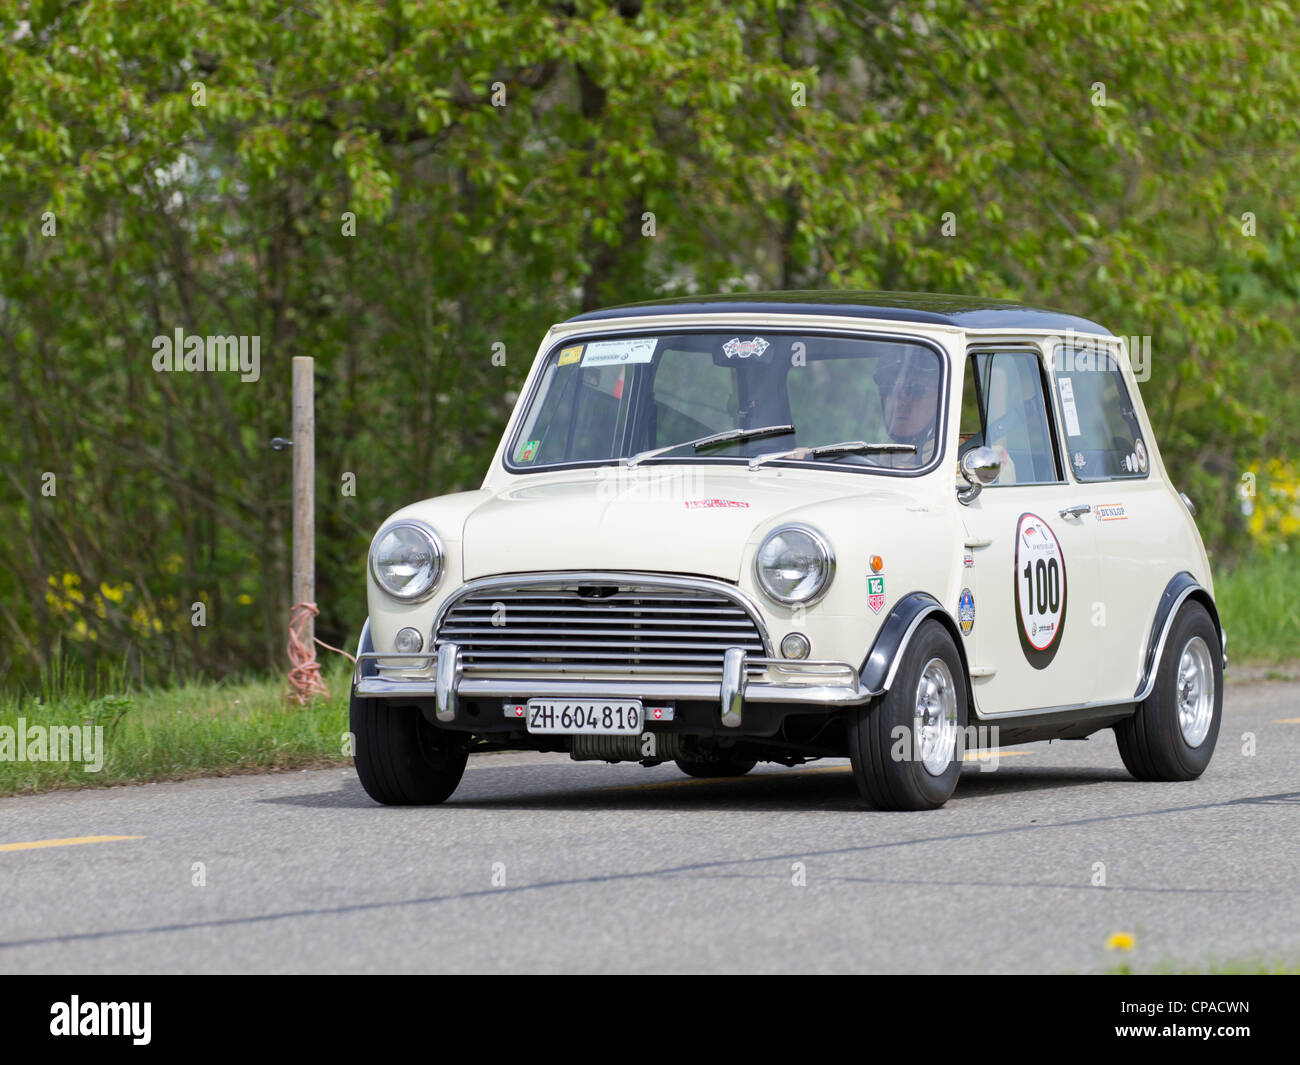 vintage race touring car morris mini cooper s from 1969 at grand prix stock photo 48172817 alamy. Black Bedroom Furniture Sets. Home Design Ideas